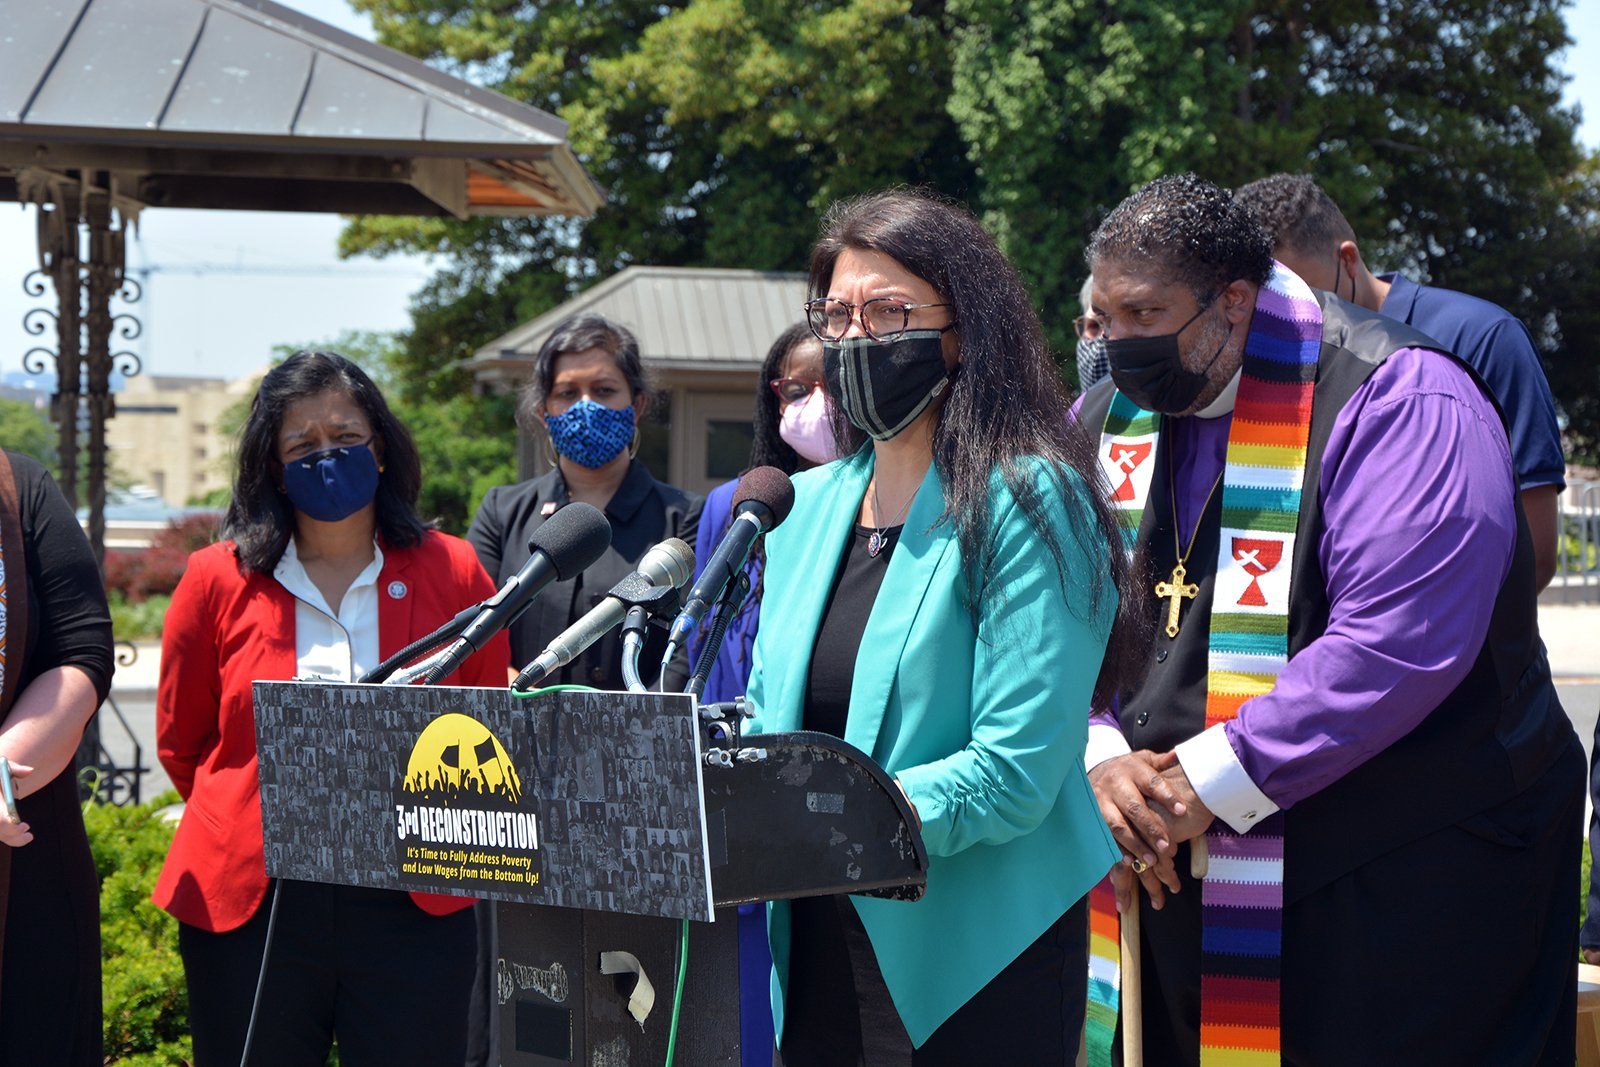 """Rep. Rashida Tlaib, of Michigan, speaks during the announcement of a new resolution titled """"Third Reconstruction: Fully Addressing Poverty and Low Wages from the Bottom Up,"""" Thursday, May 20, 2021, on Capitol Hill in Washington. RNS photo by Jack Jenkins"""